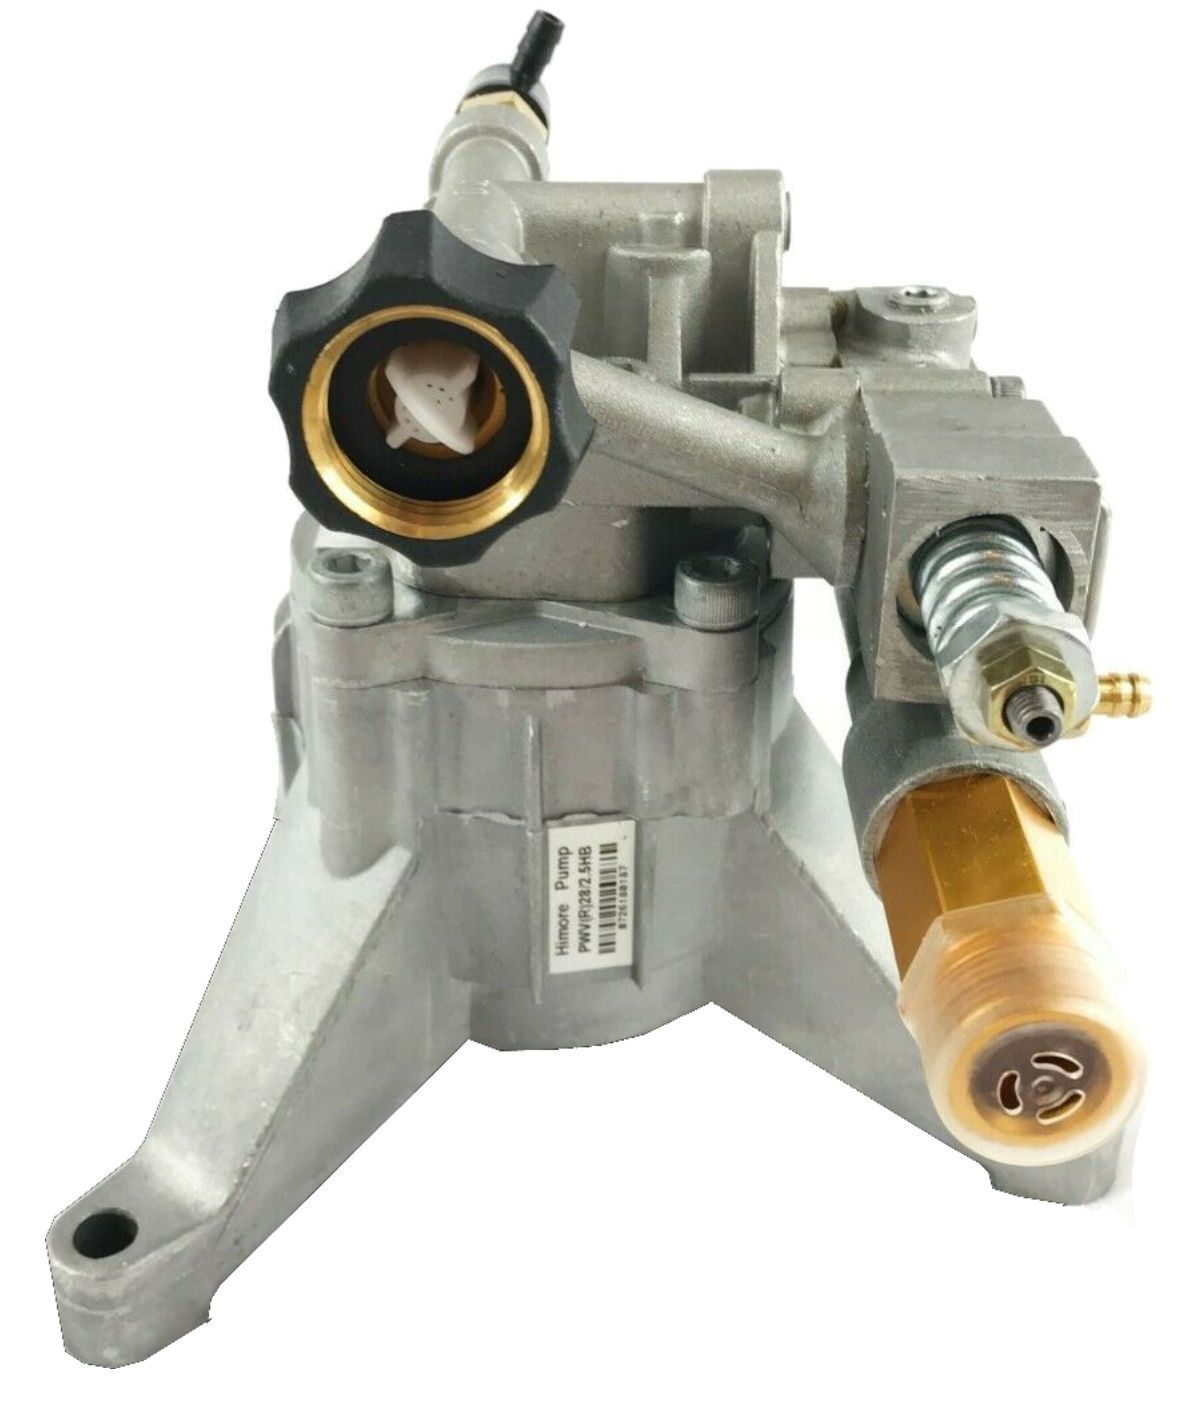 2700 PSI PRESSURE WASHER WATER PUMP fits Troy-Bilt 020292-3 020292-4 - AE-Power